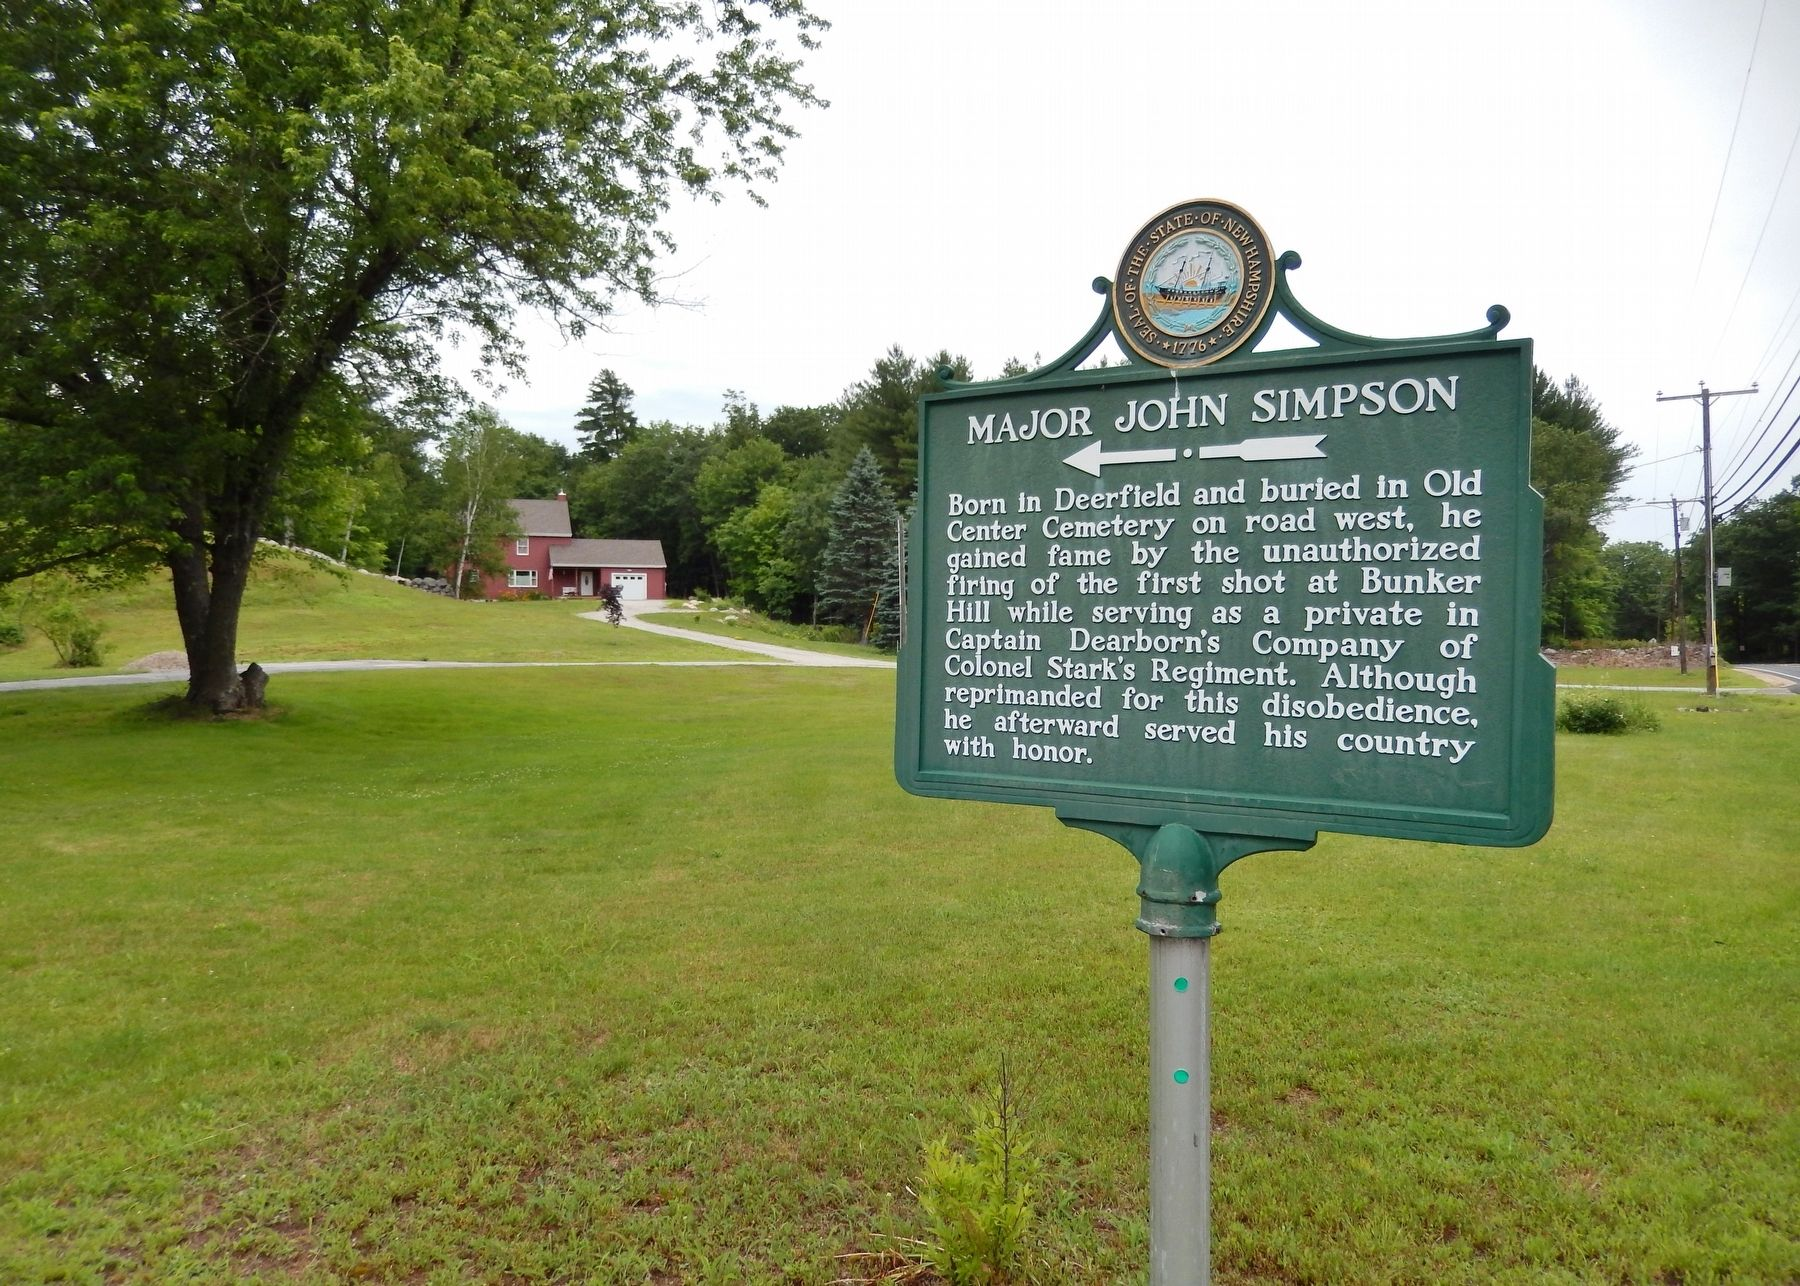 Major John Simpson Marker (<i>wide view</i>) image. Click for full size.